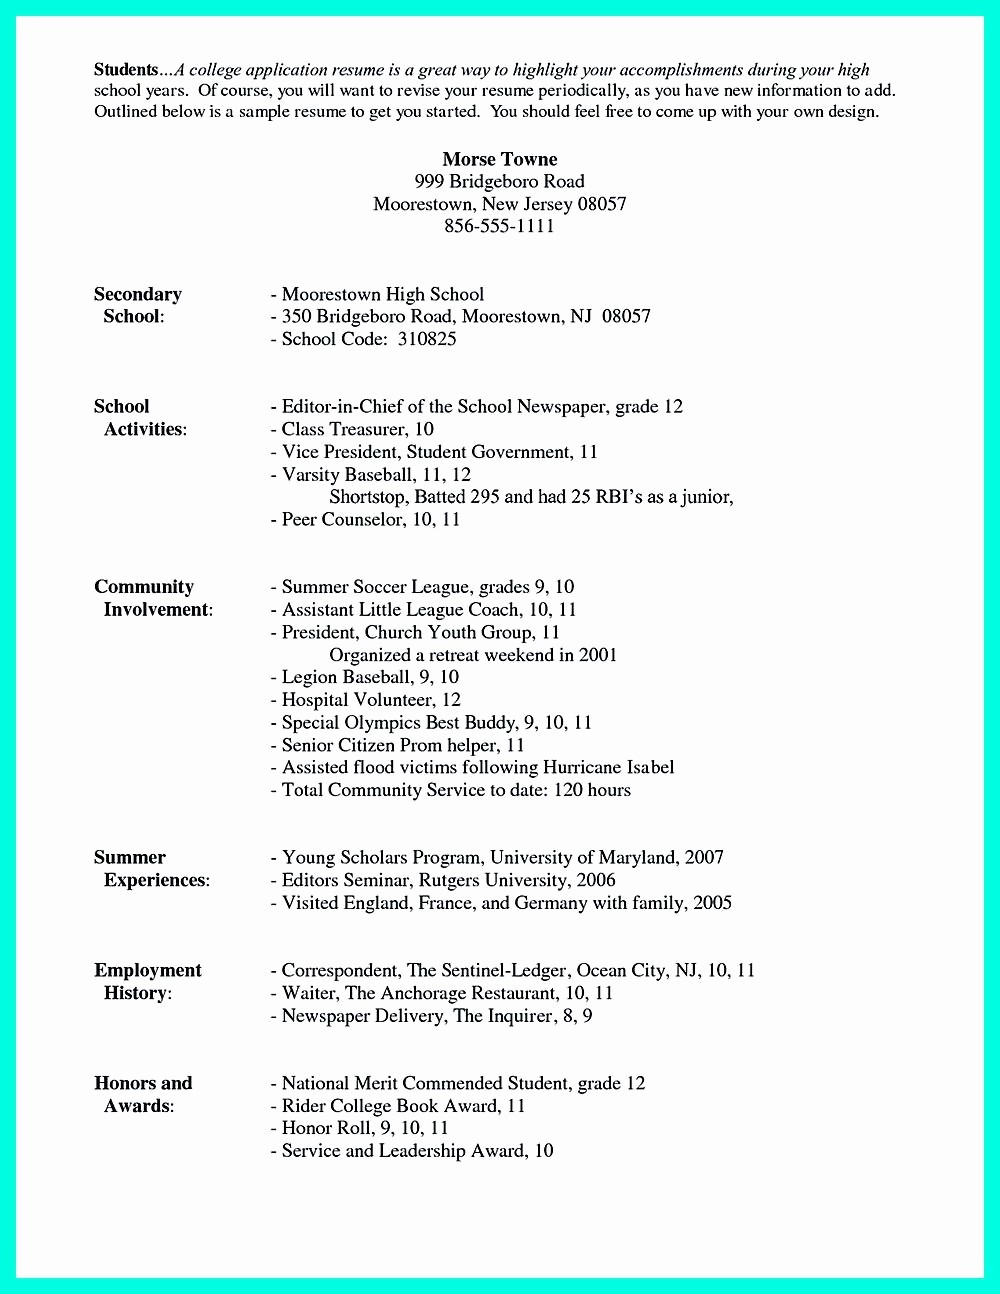 Free Resume Templates for Students Best Of for High School Students It is sometimes Troublesome to